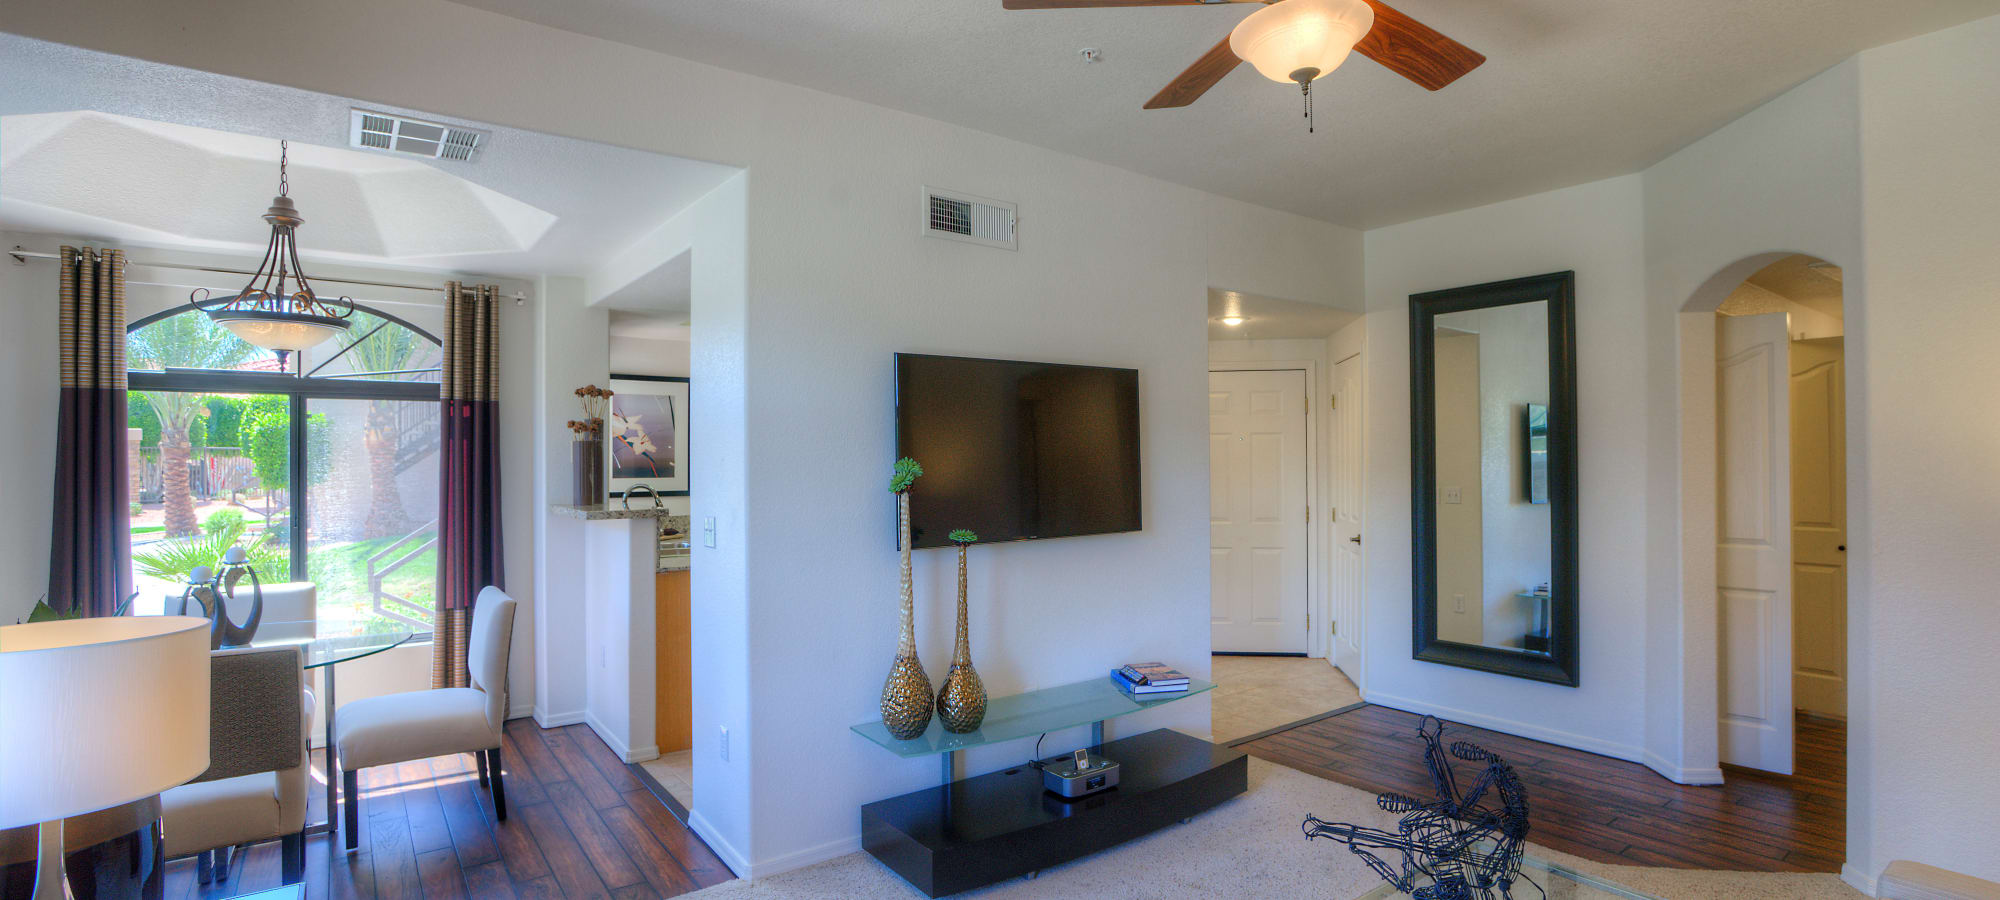 Living room with sliding glass door at San Lagos in Glendale, Arizona